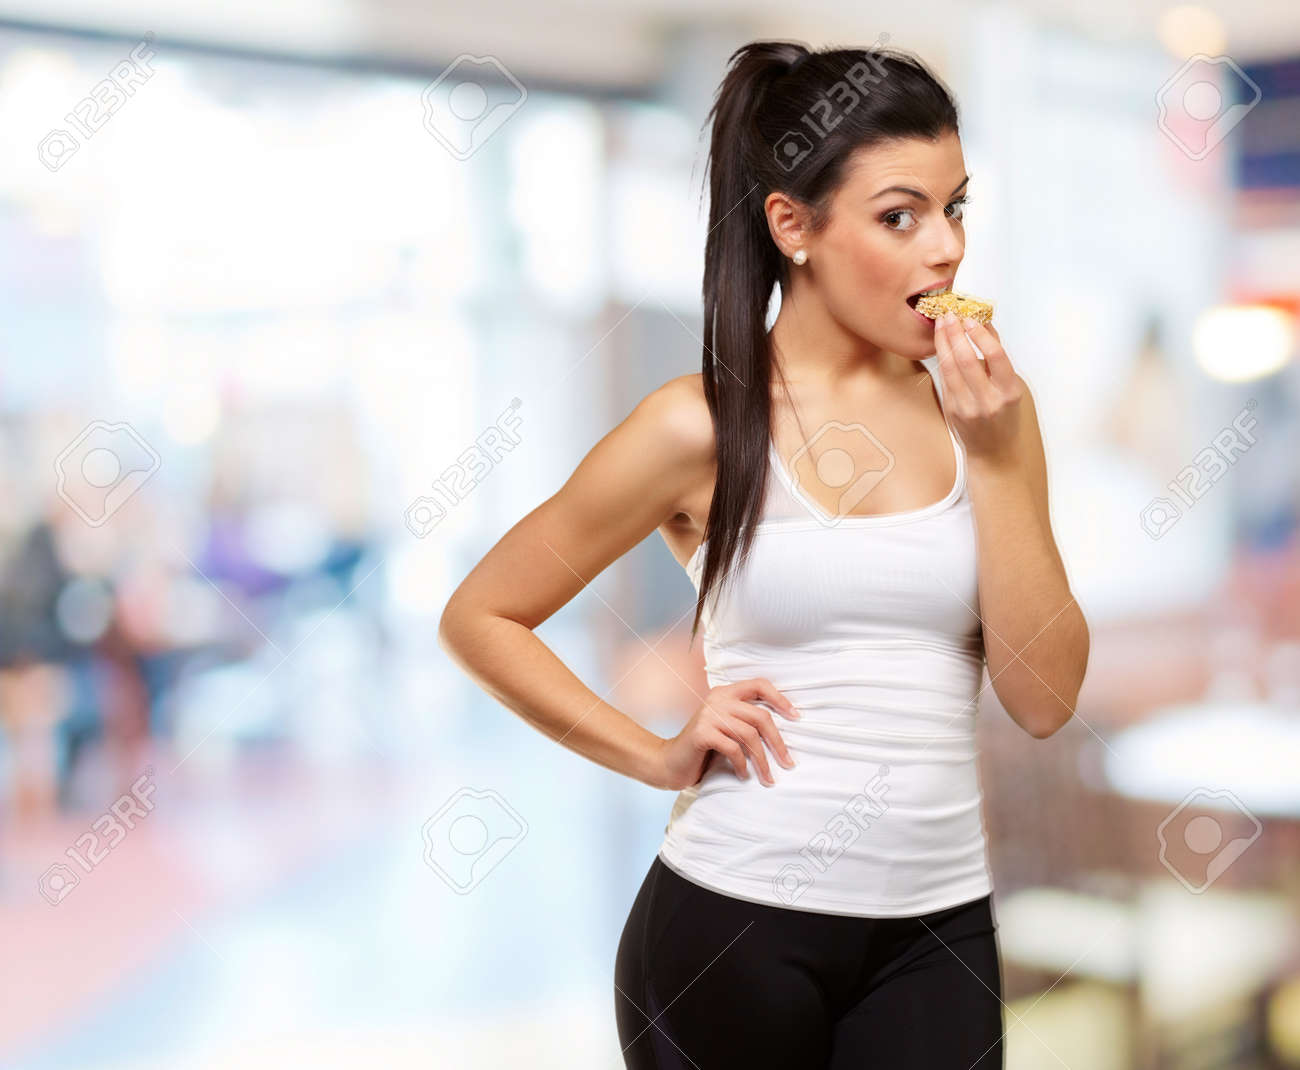 young healthy girl eating a cereal bar indoor - 16252332